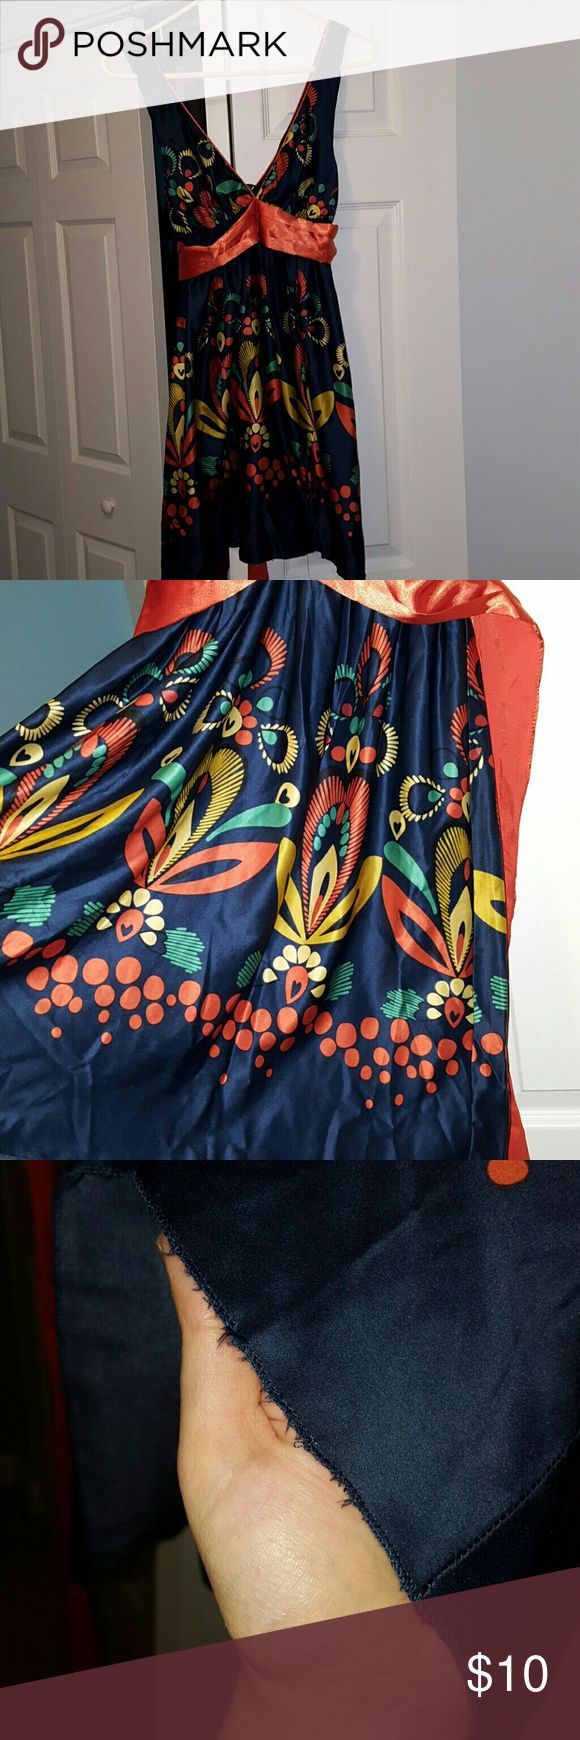 Navy party dress Navy low cut dress with orange and yellow flowers. Orange tie sash under bust. 23 inches from armpit to hem. Great going out dress for summer or fall. Small fraying at hem (see pictures). From a home with cats. Forever 21 Dresses Midi